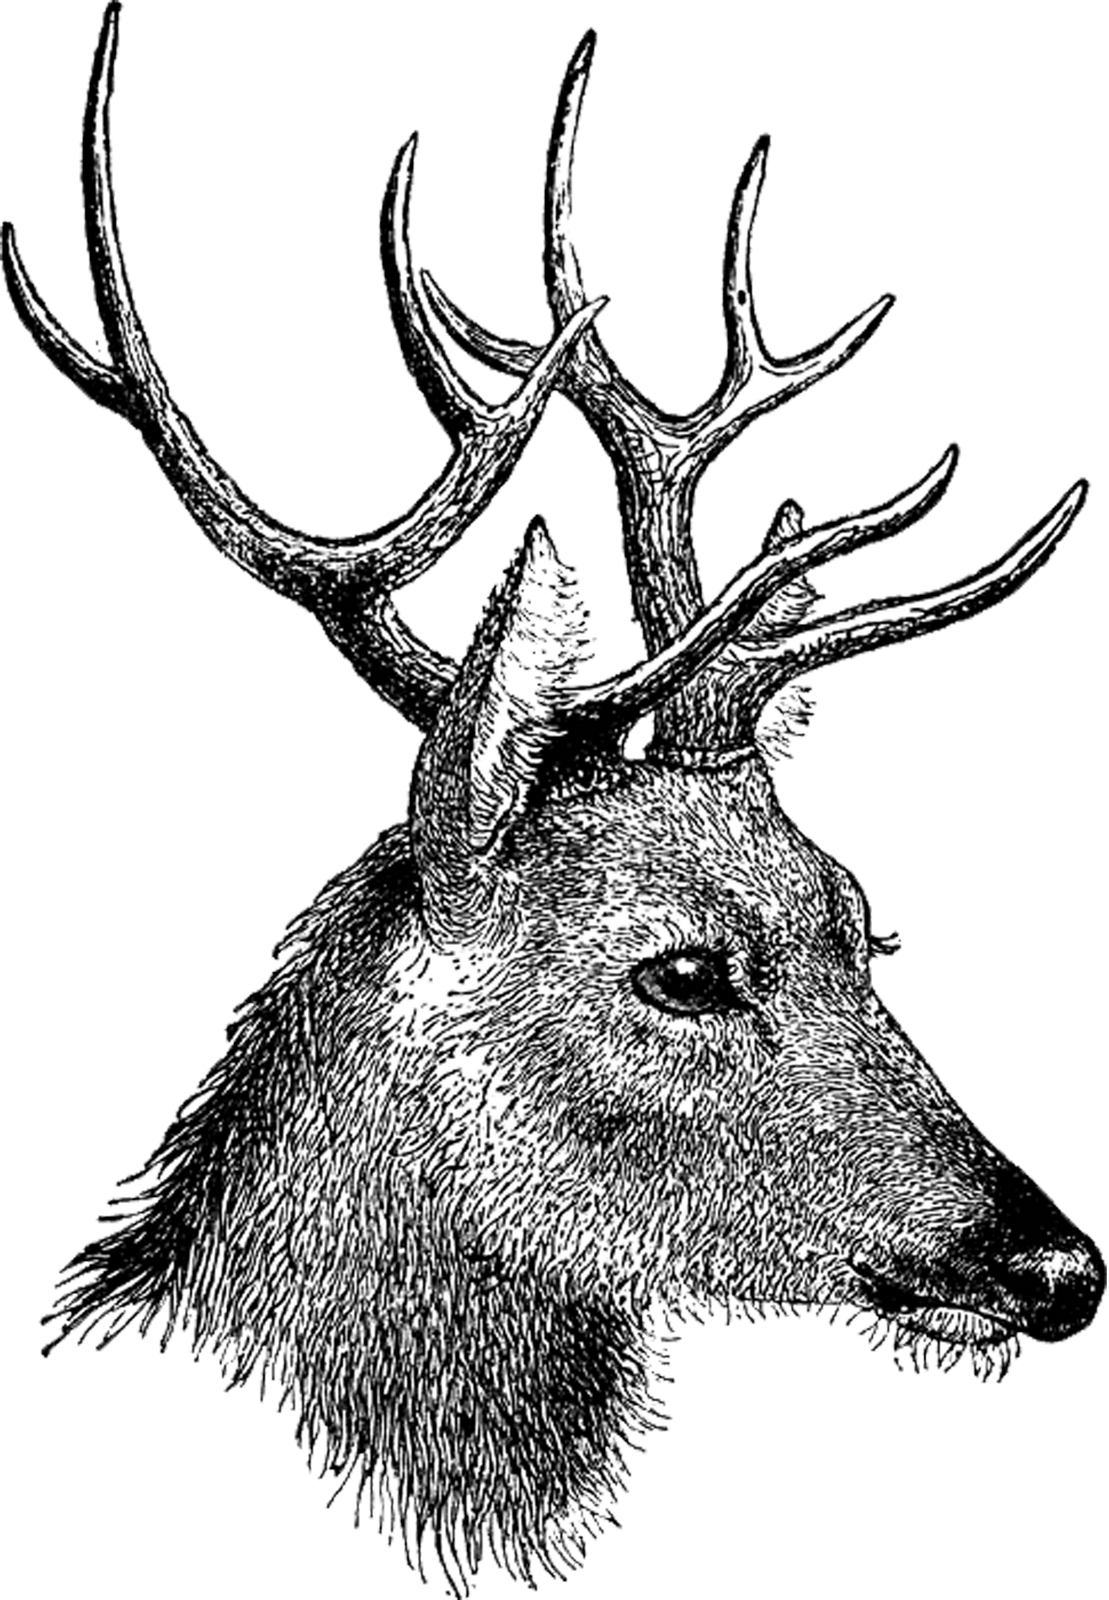 raindeer drawing pencil